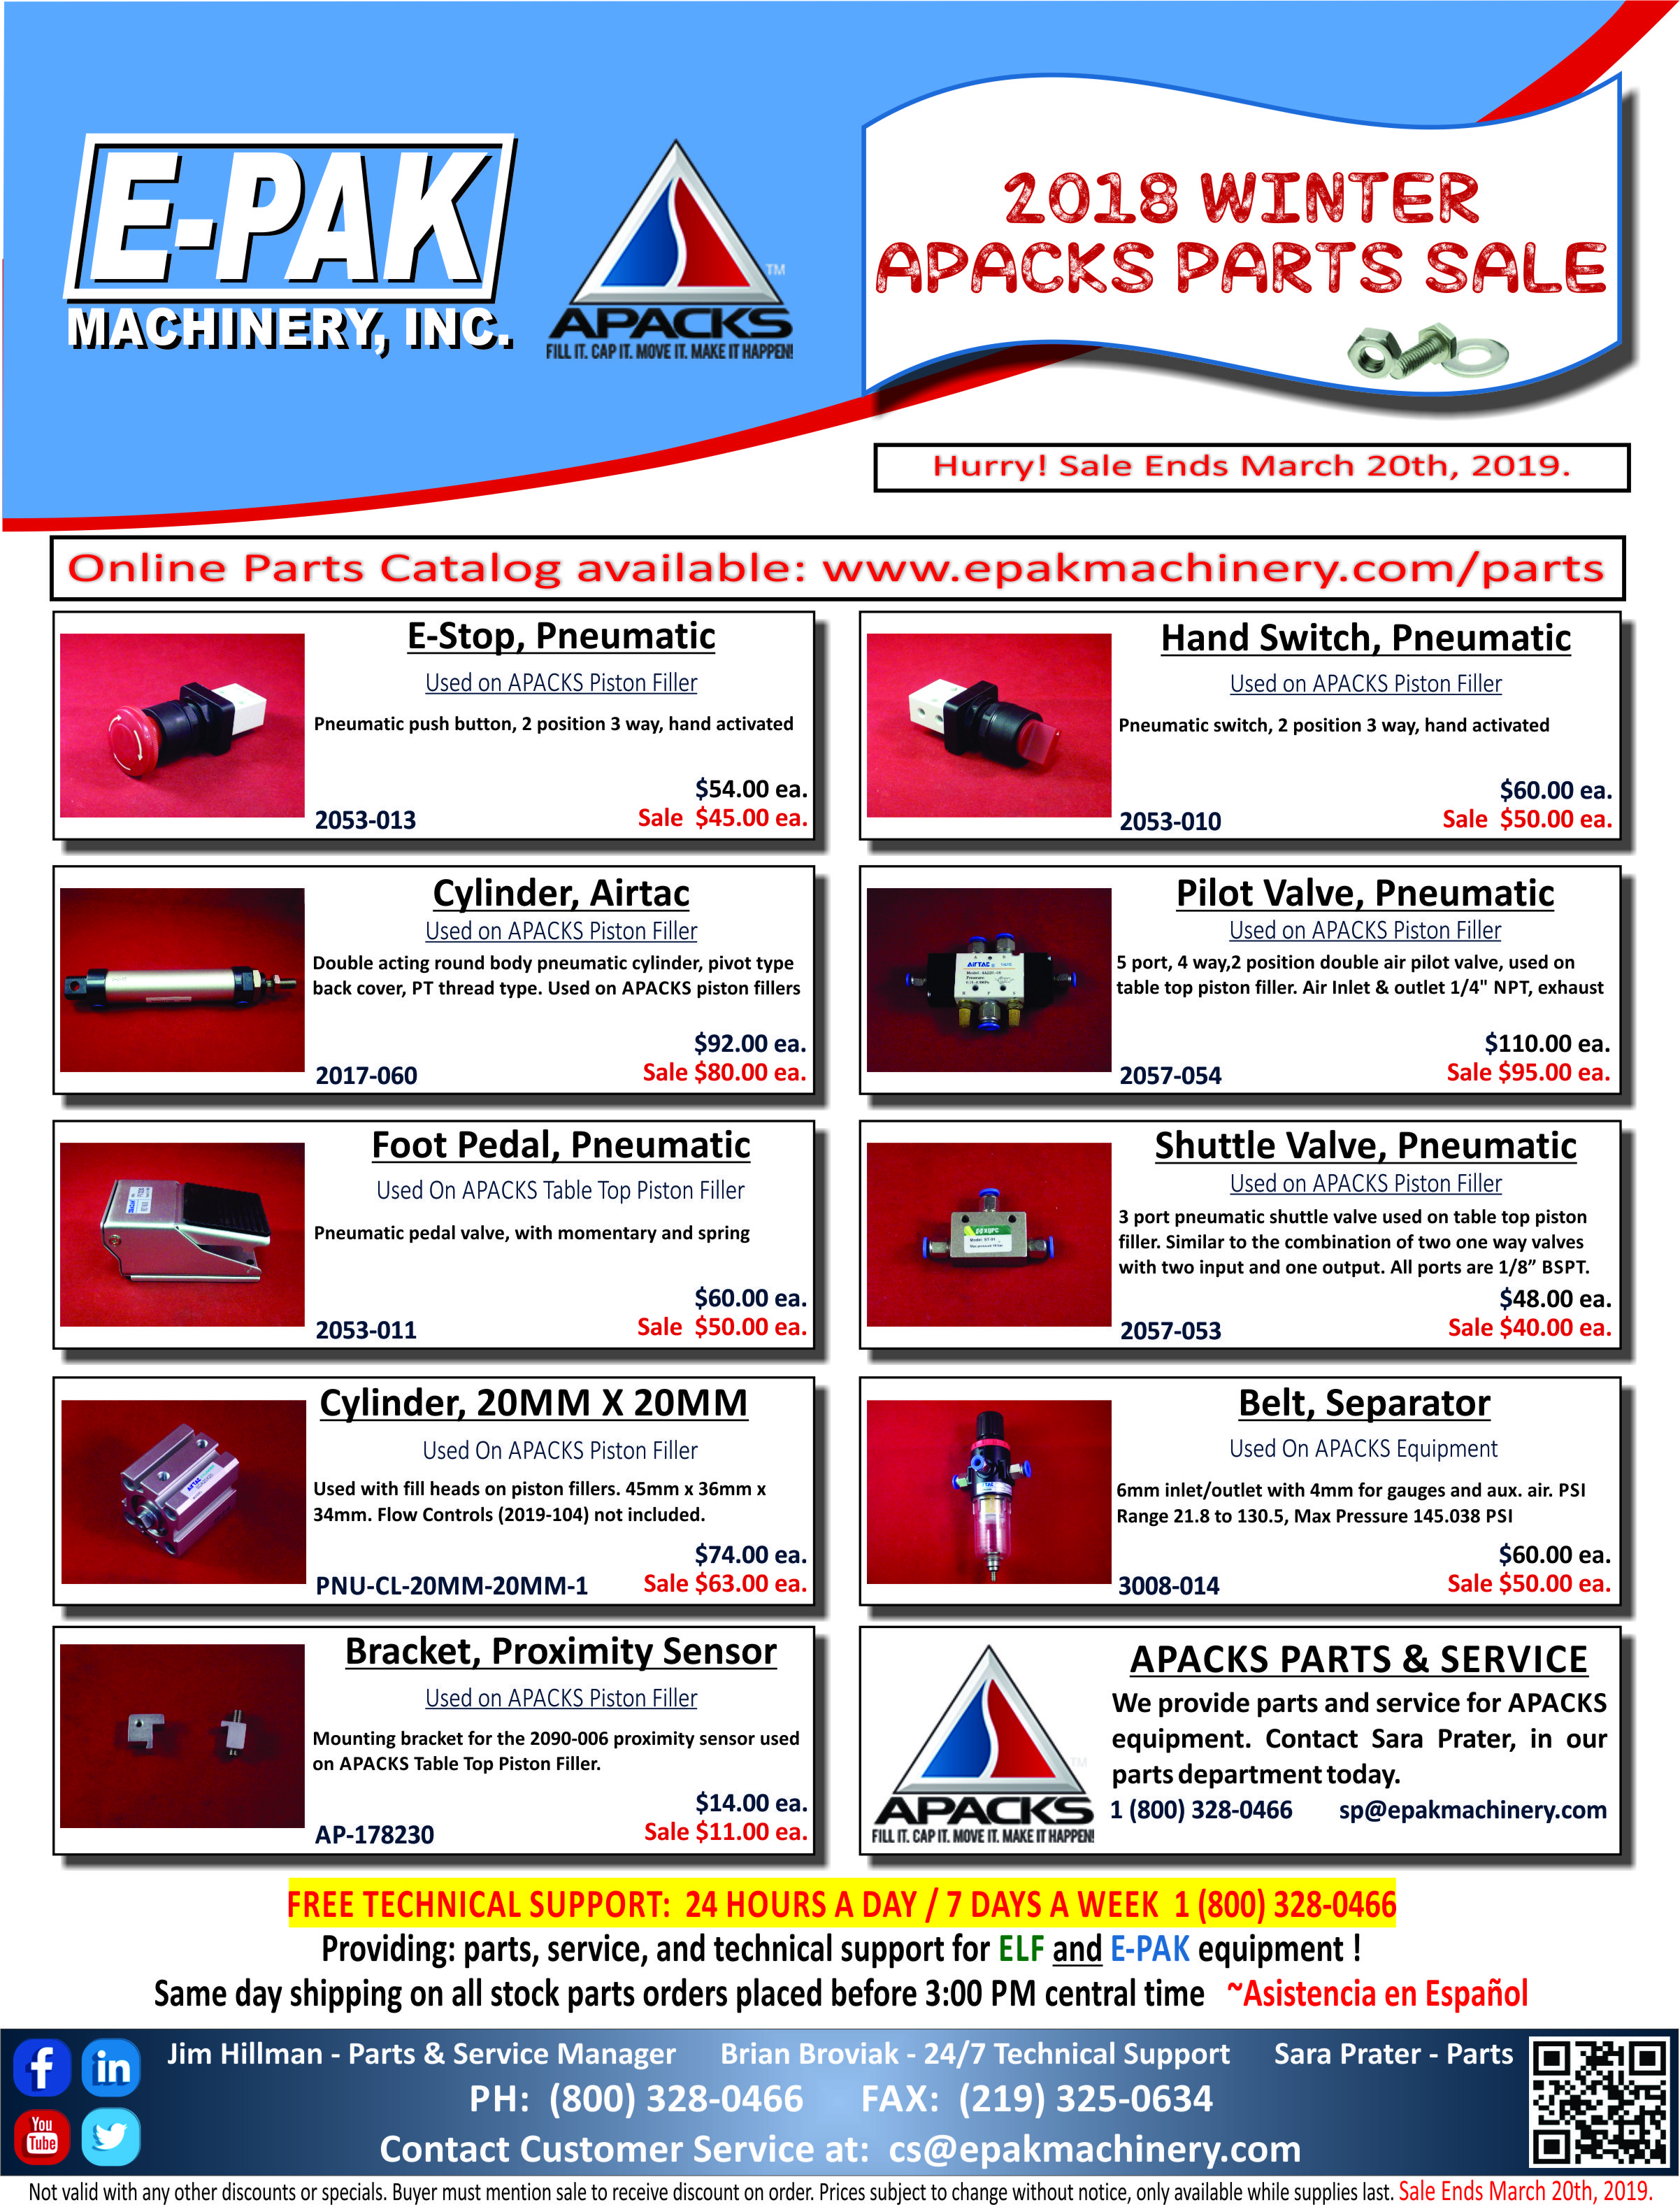 apacks-parts-sale-flyer-winter-2018-revised.jpg